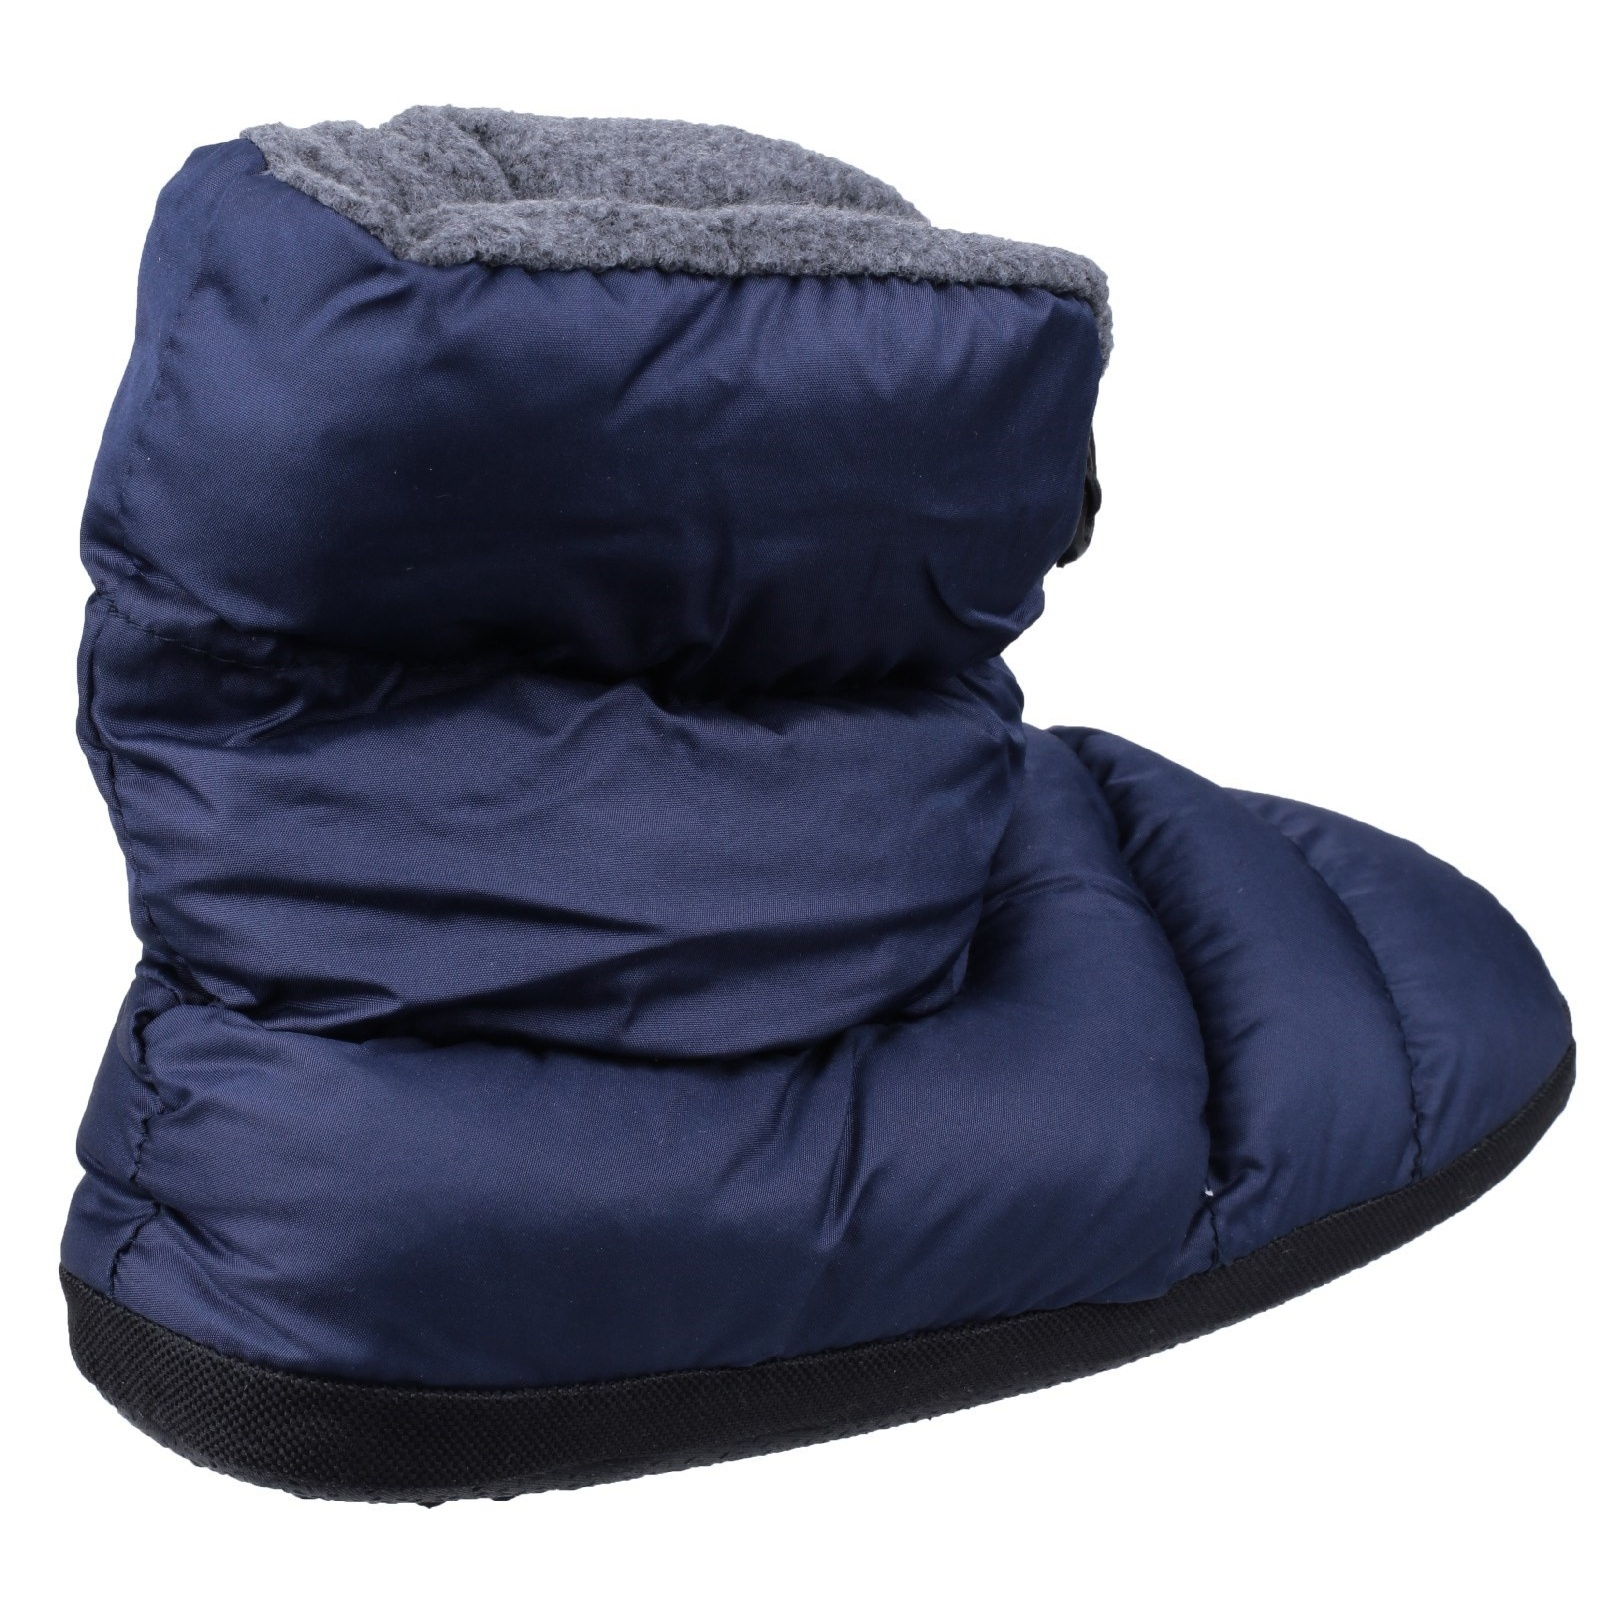 Cotswold CAMPING Mens Pull On Comfort Warm Faux Fur Camping Boot Slippers Navy